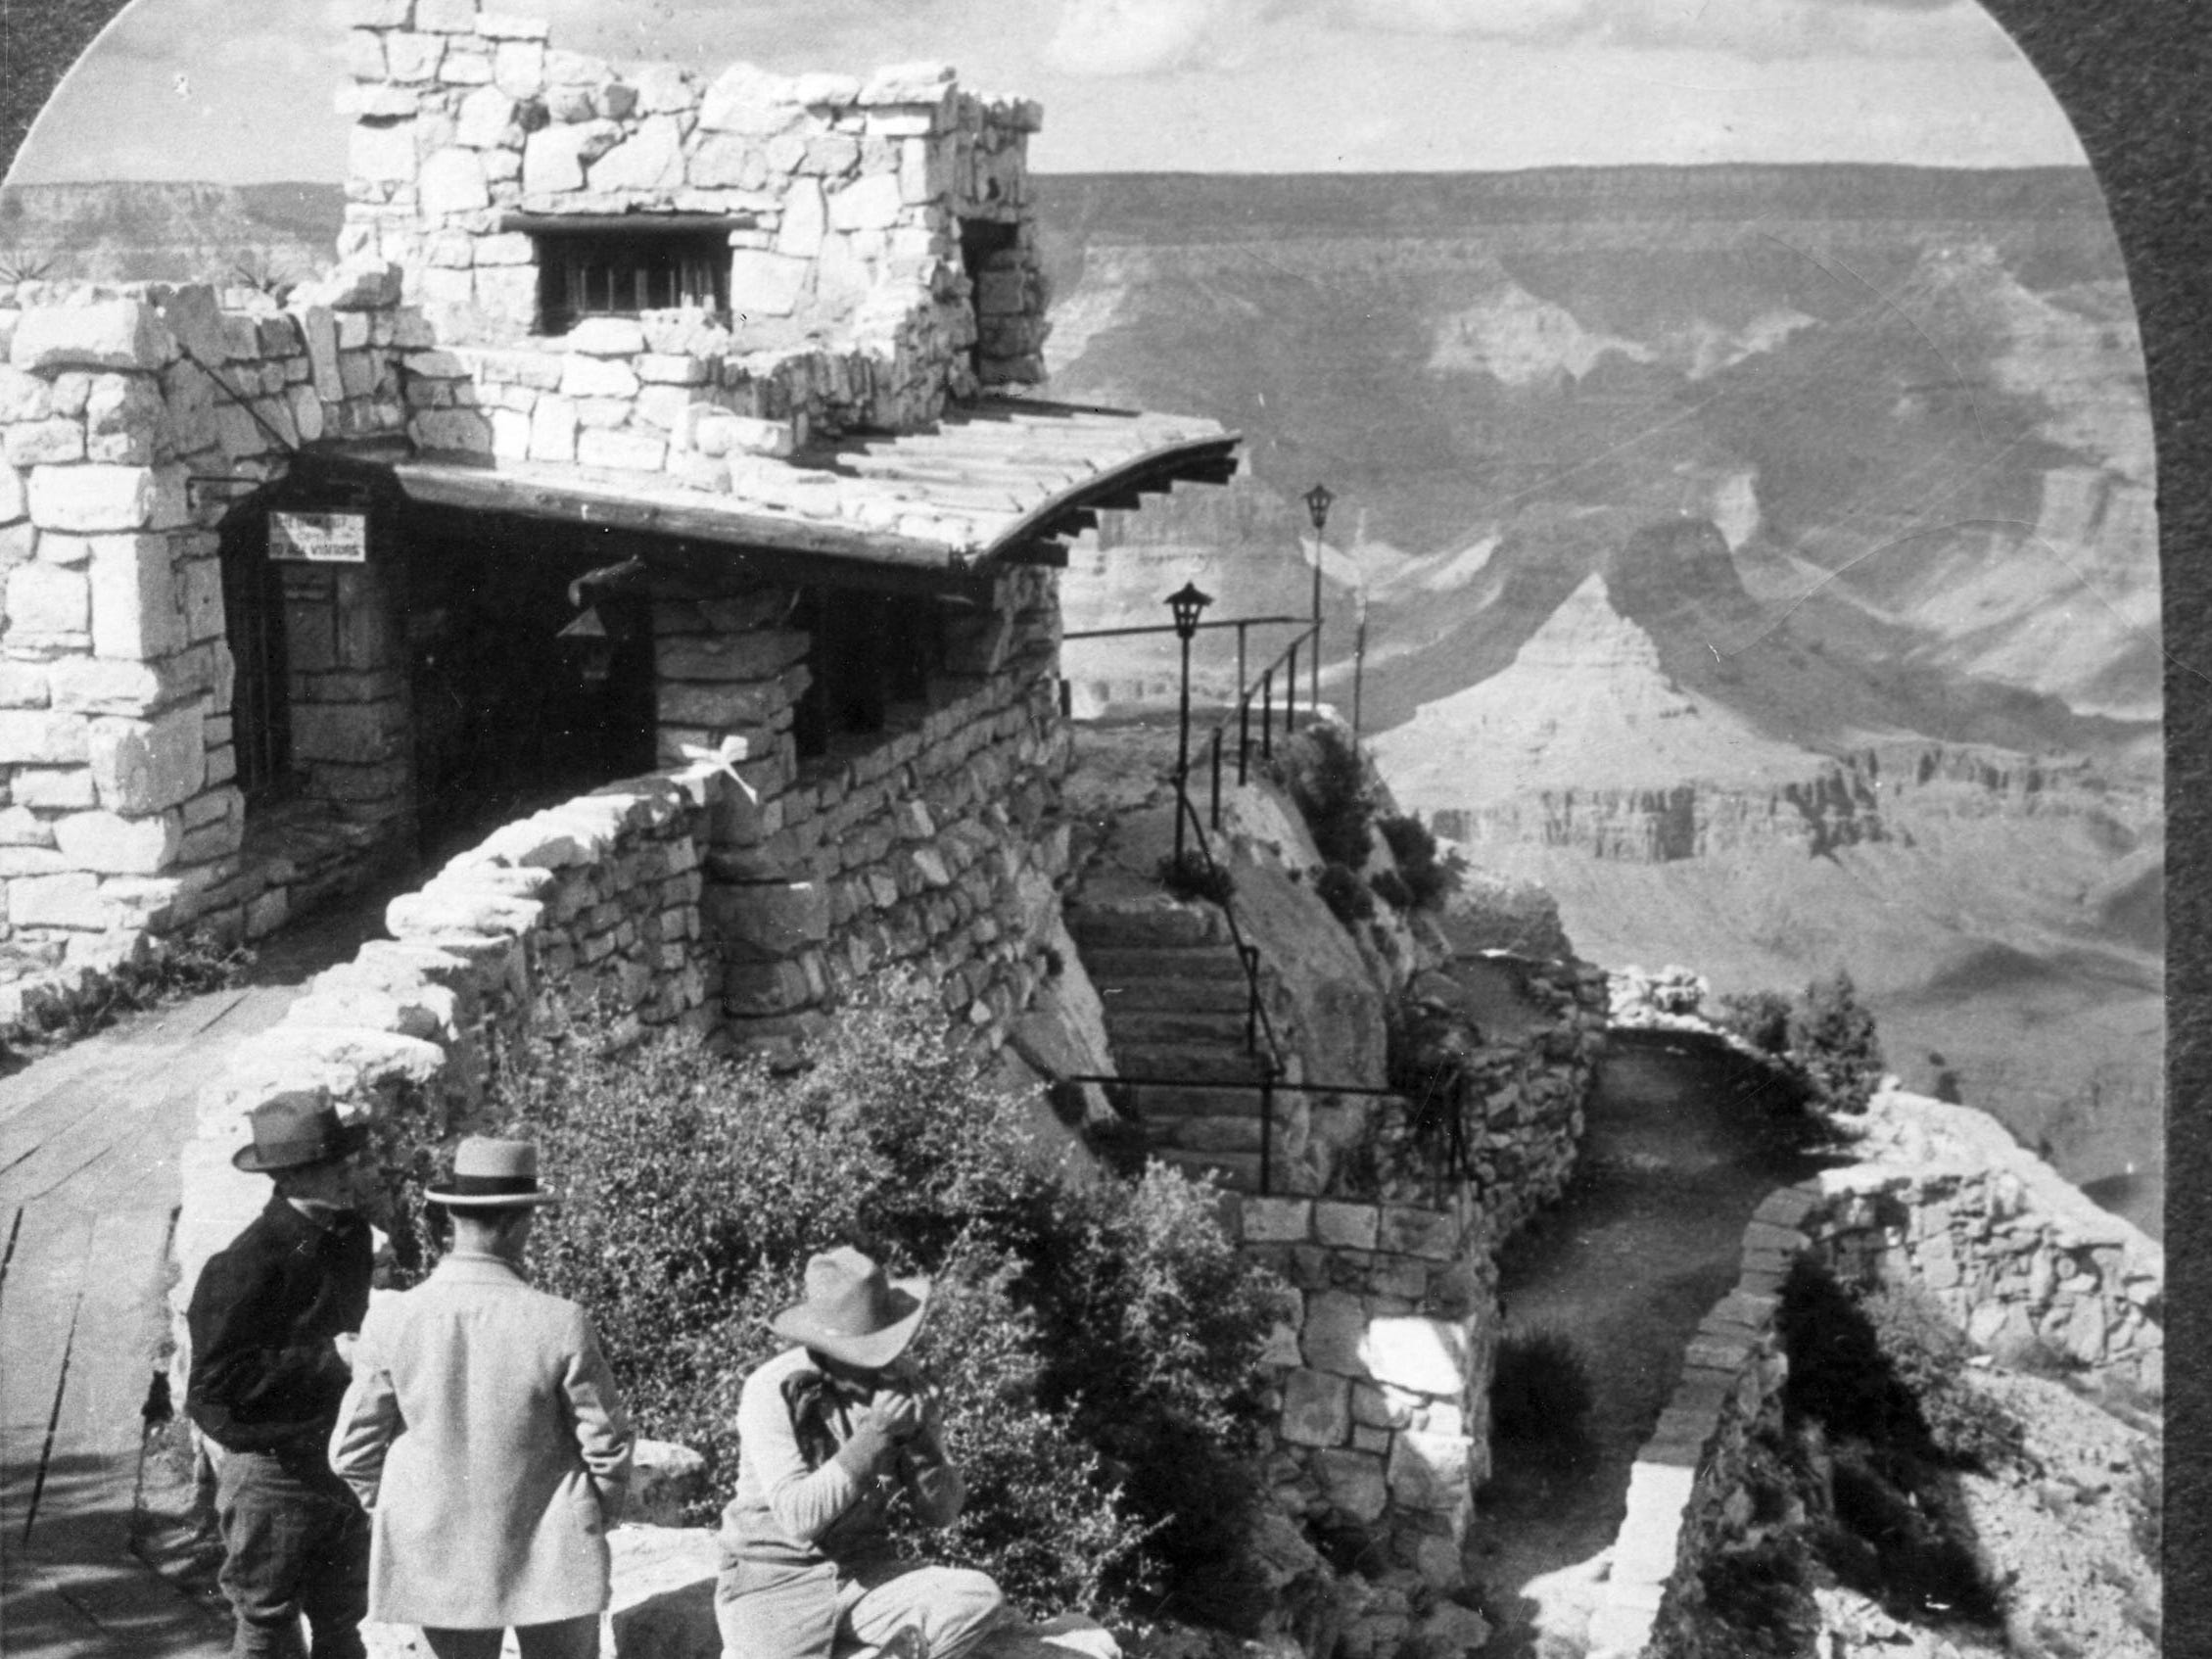 Lookout Tower on the South Rim, as seen in 1919.